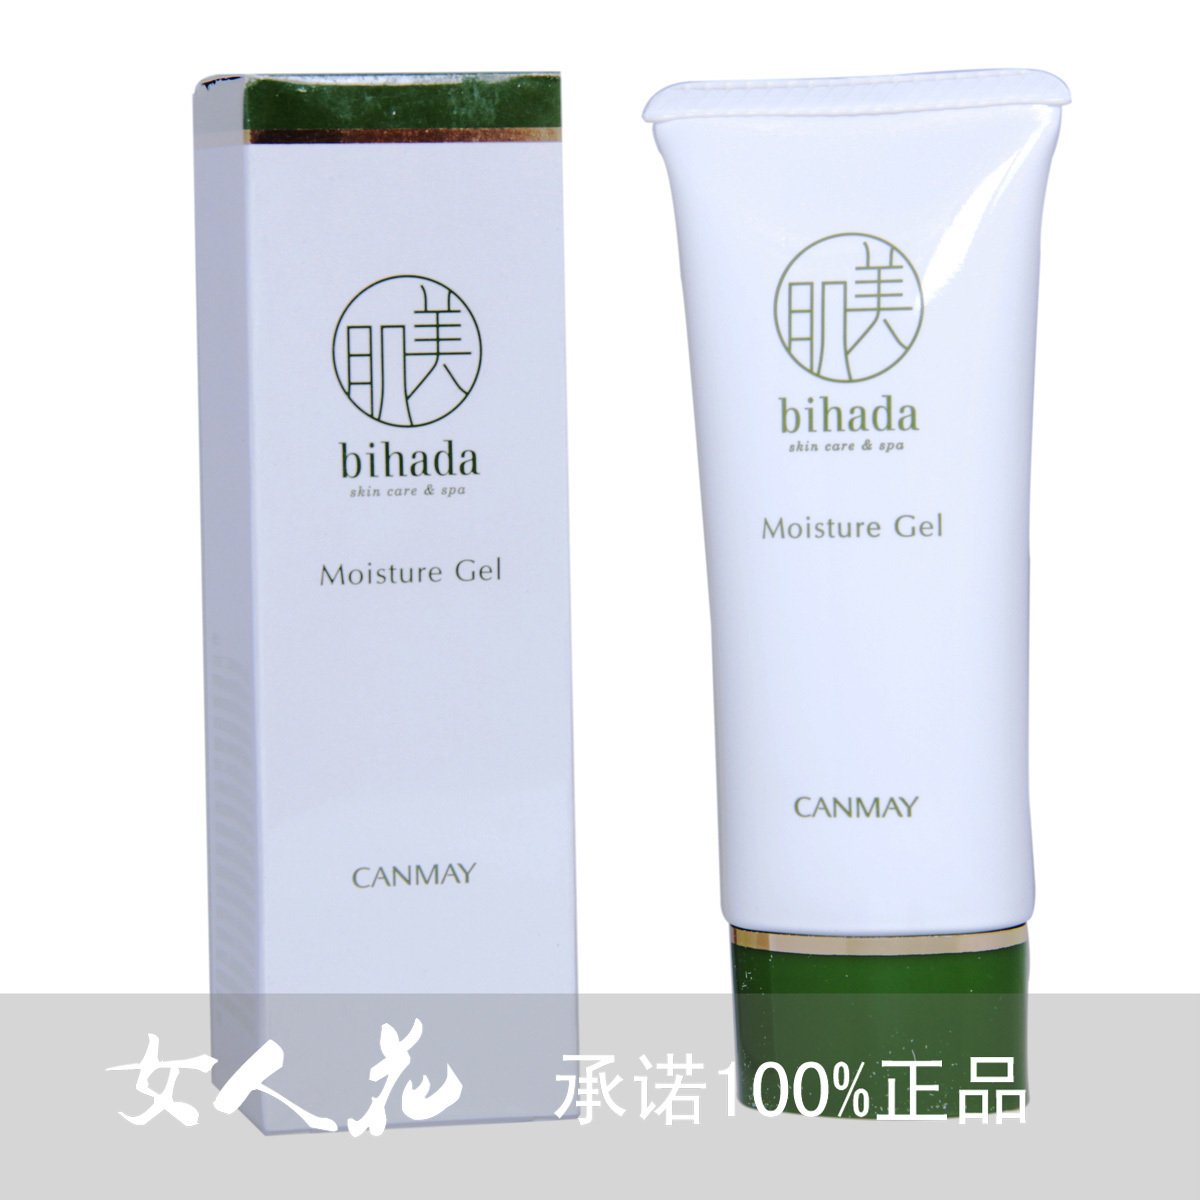 Body nutritional lipids 50g moisturizing cream moisturizing elastic cosmetics